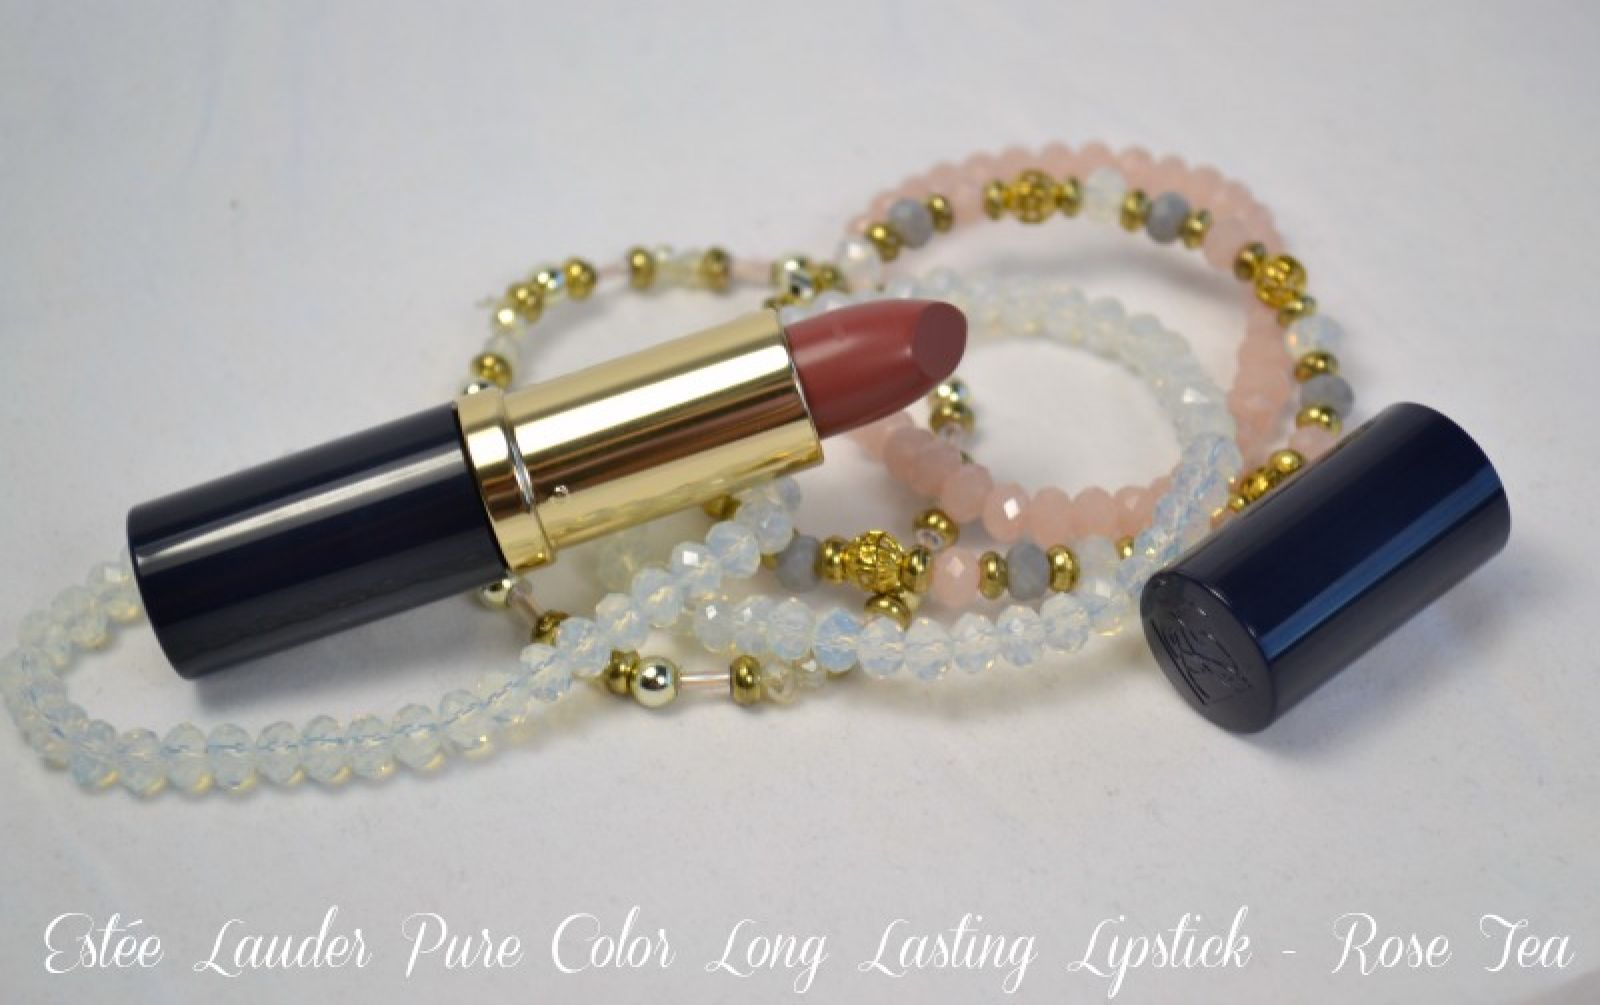 Estée Lauder Pure Color Long Lasting Lipstick Rose Tea Creme